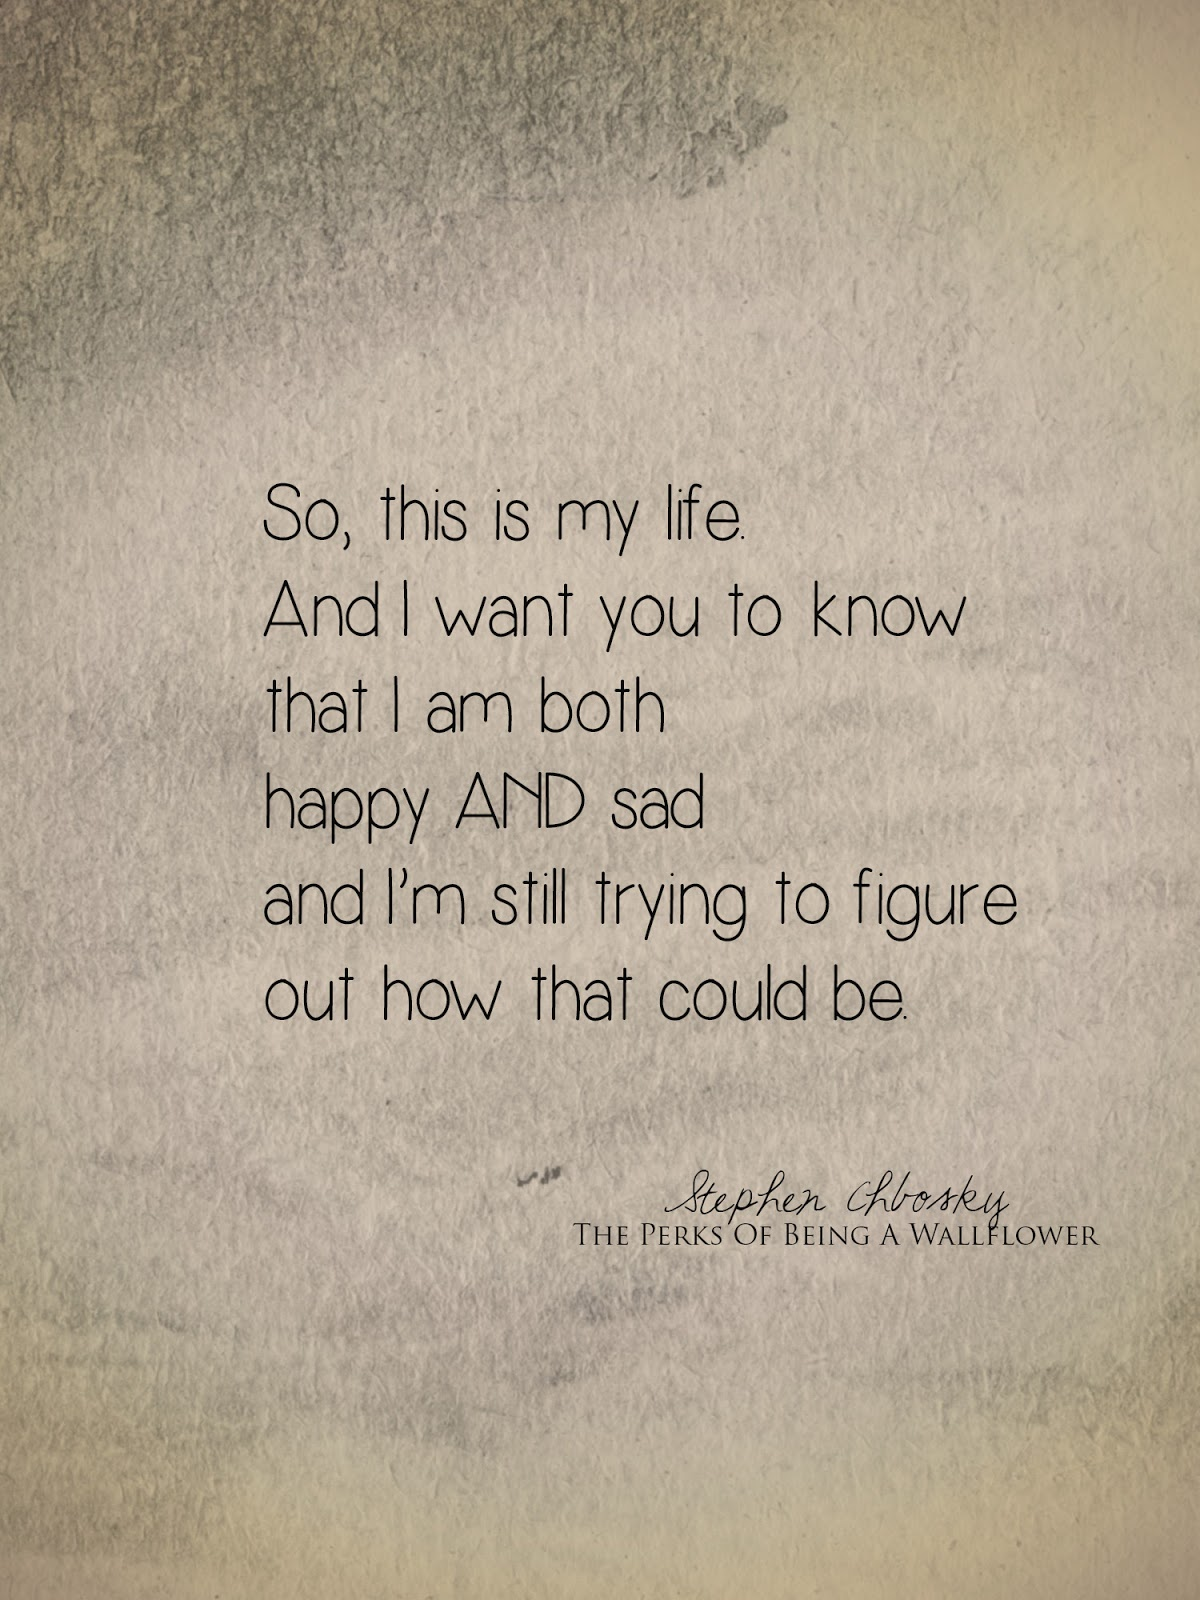 sad quotes about life sad life quotes - HD1200×1600